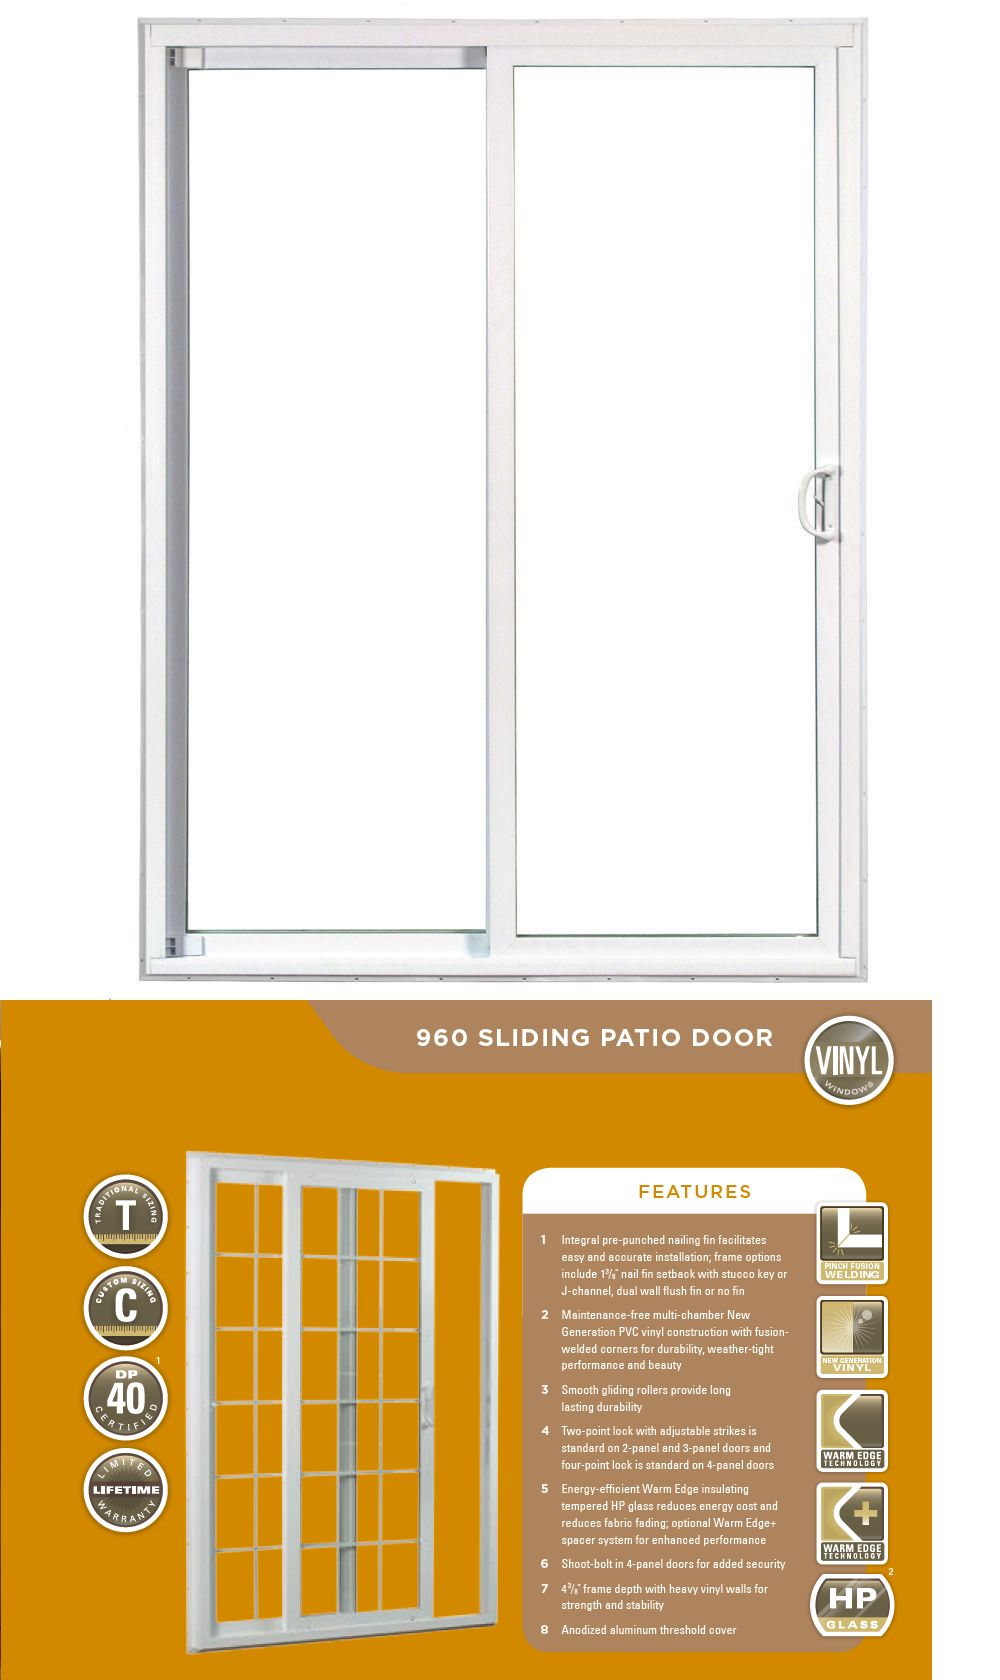 Doors 85892 Ply Gem Pro Series 960s Standard Two Panel Patio Sliding Door Low E Glass Buy It Now Only 995 On Sliding Patio Doors Ply Gem Sliding Doors